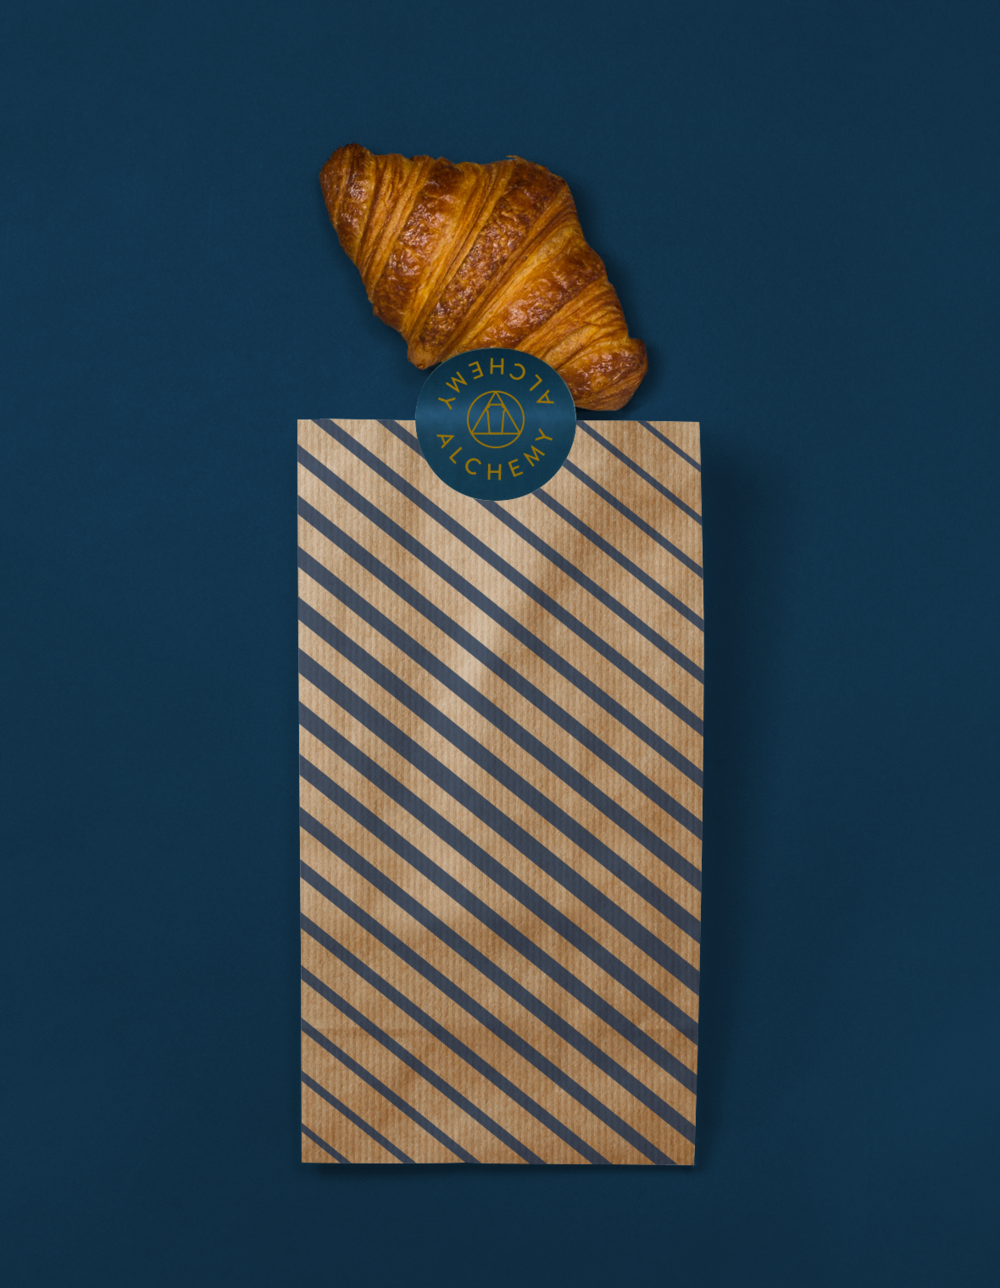 alchemy-croissant-mockup.png